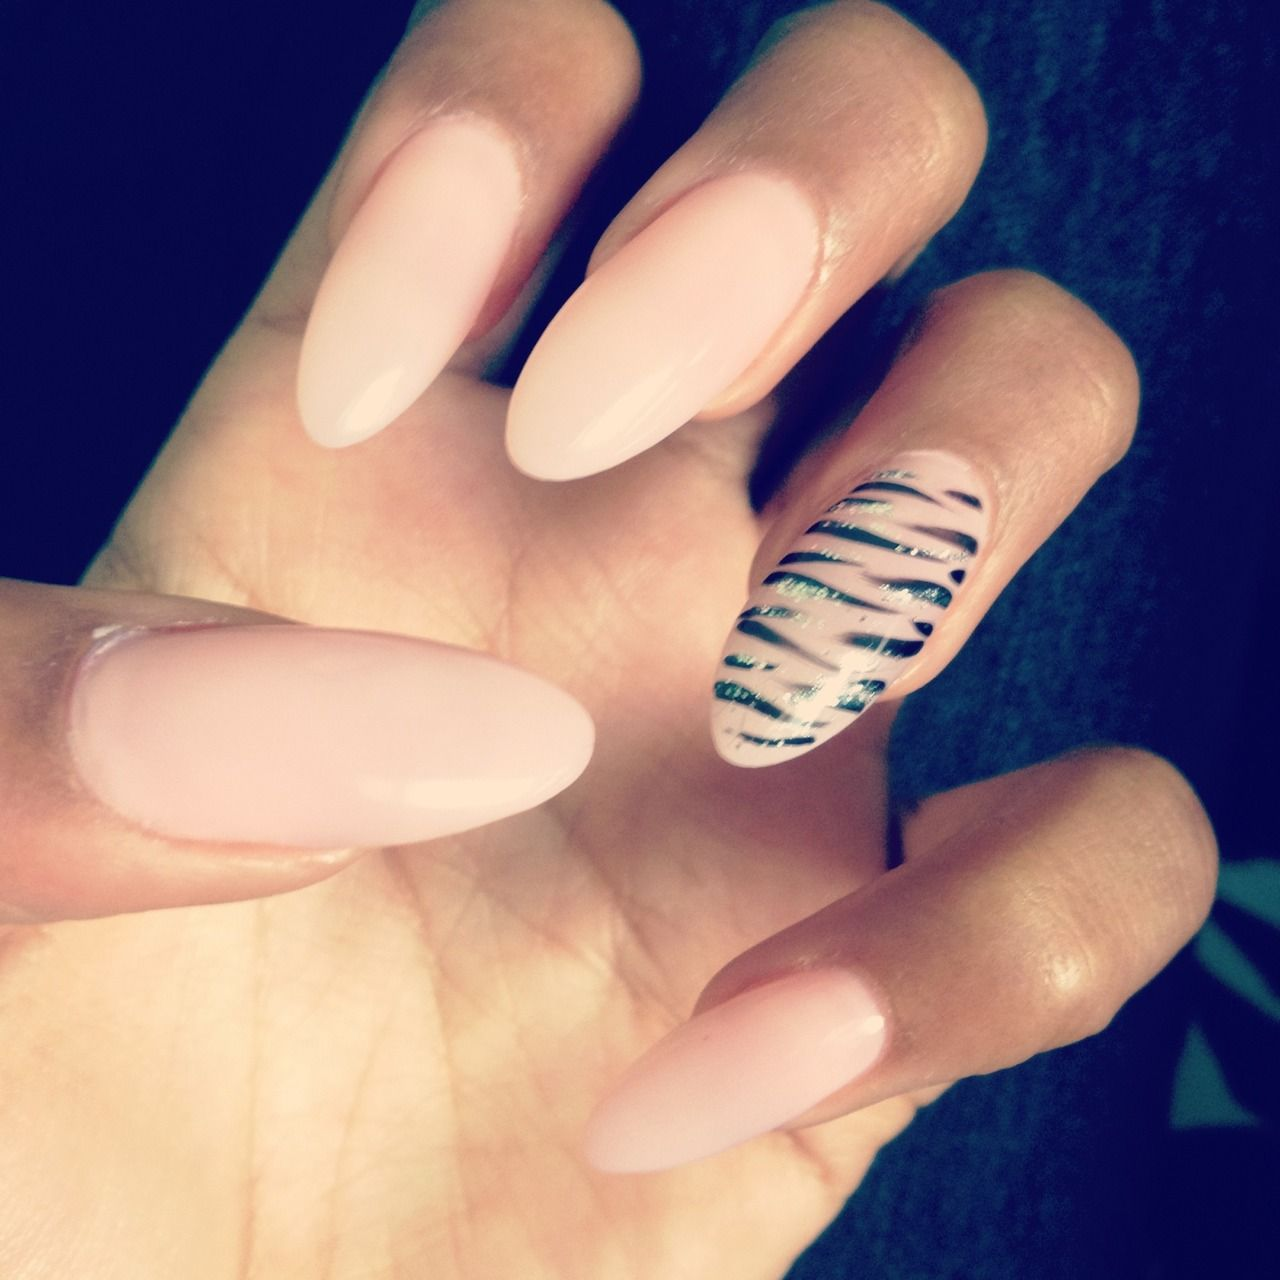 Nude nails with tiger stripe nail pictures photos and images for nude nails with tiger stripe nail prinsesfo Choice Image